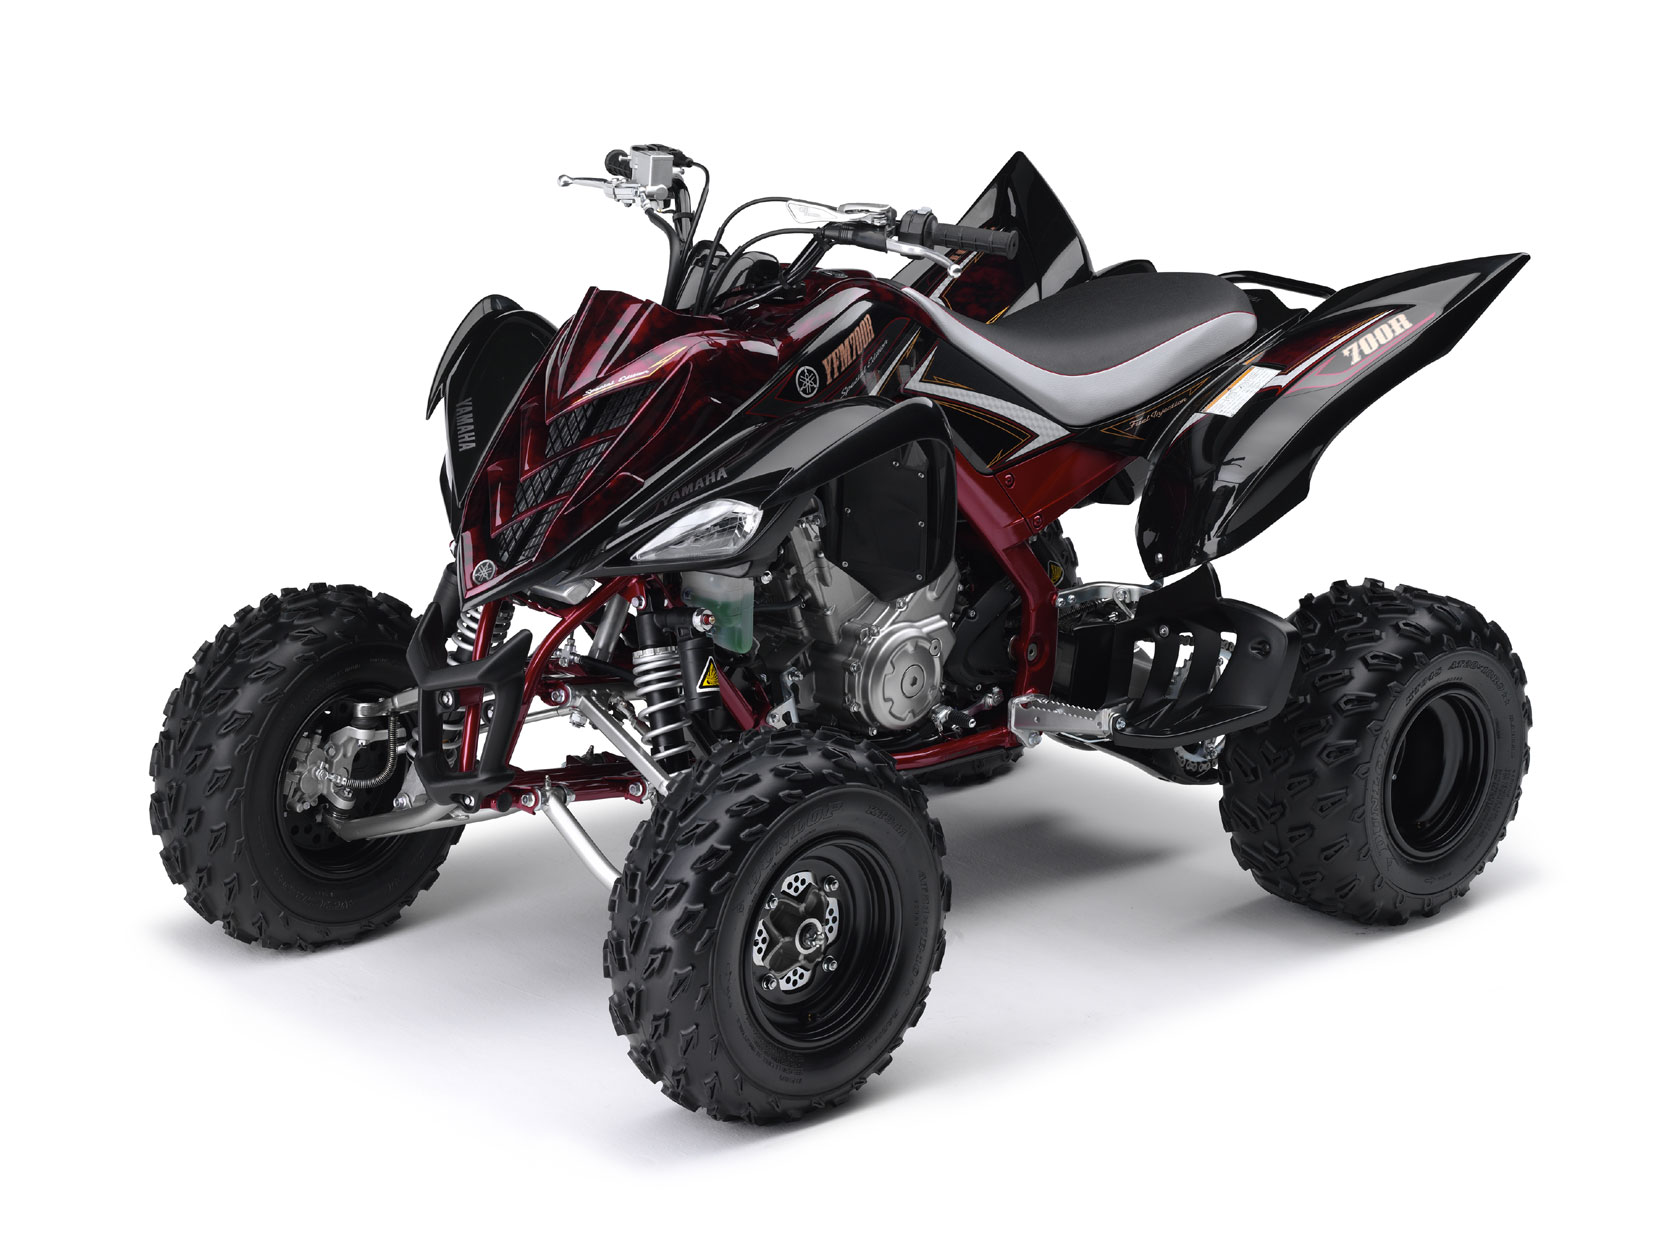 yamaha raptor 700r se specs 2008 2009 autoevolution. Black Bedroom Furniture Sets. Home Design Ideas